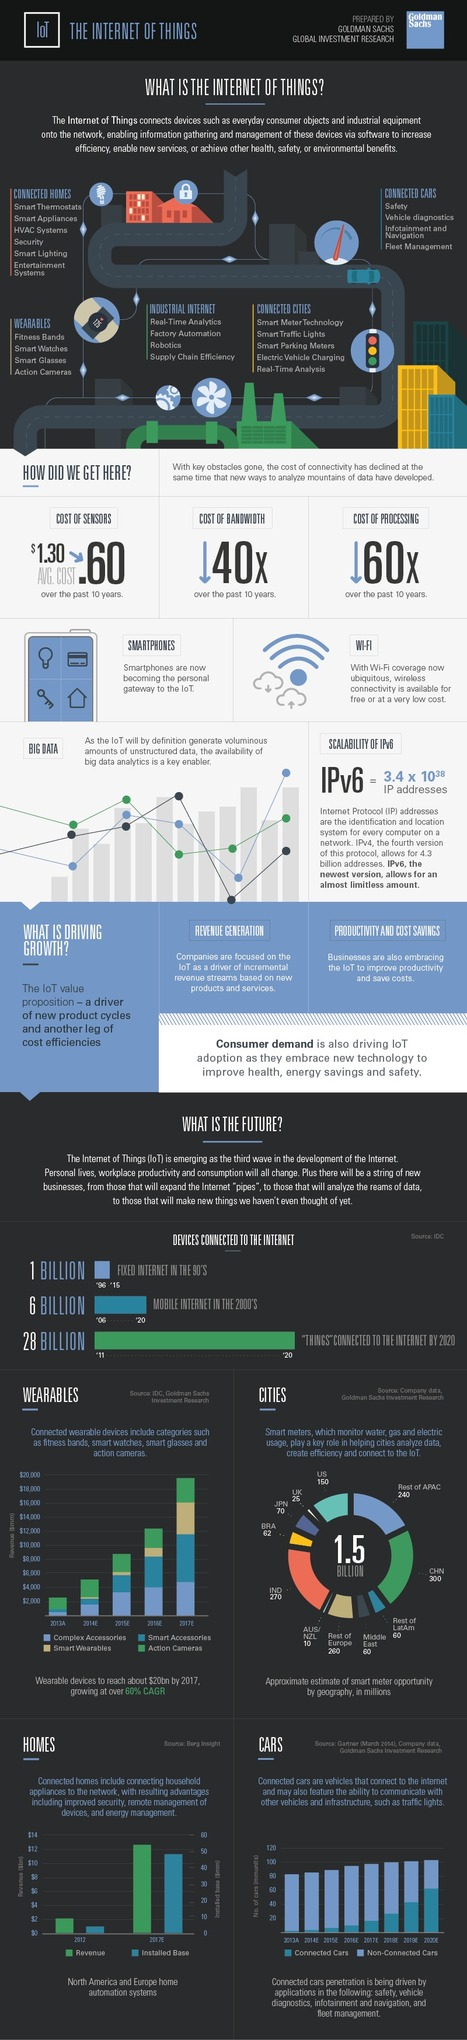 Goldman Sachs | What is the Internet of Things? [Infographic] | Future of Cloud Computing and IoT | Scoop.it